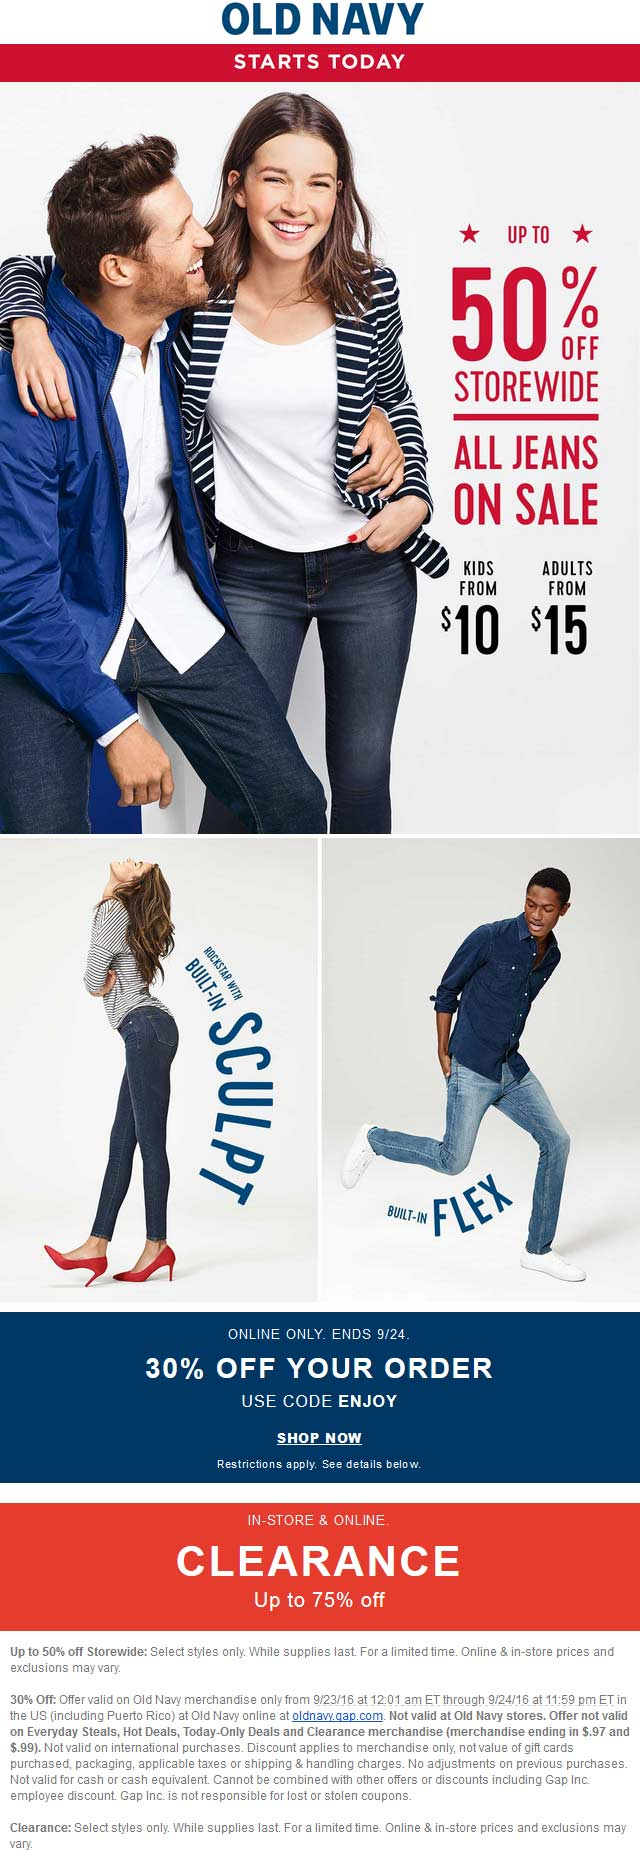 OldNavy.com Promo Coupon 30-50% off at Old Navy, or online via promo code ENJOY